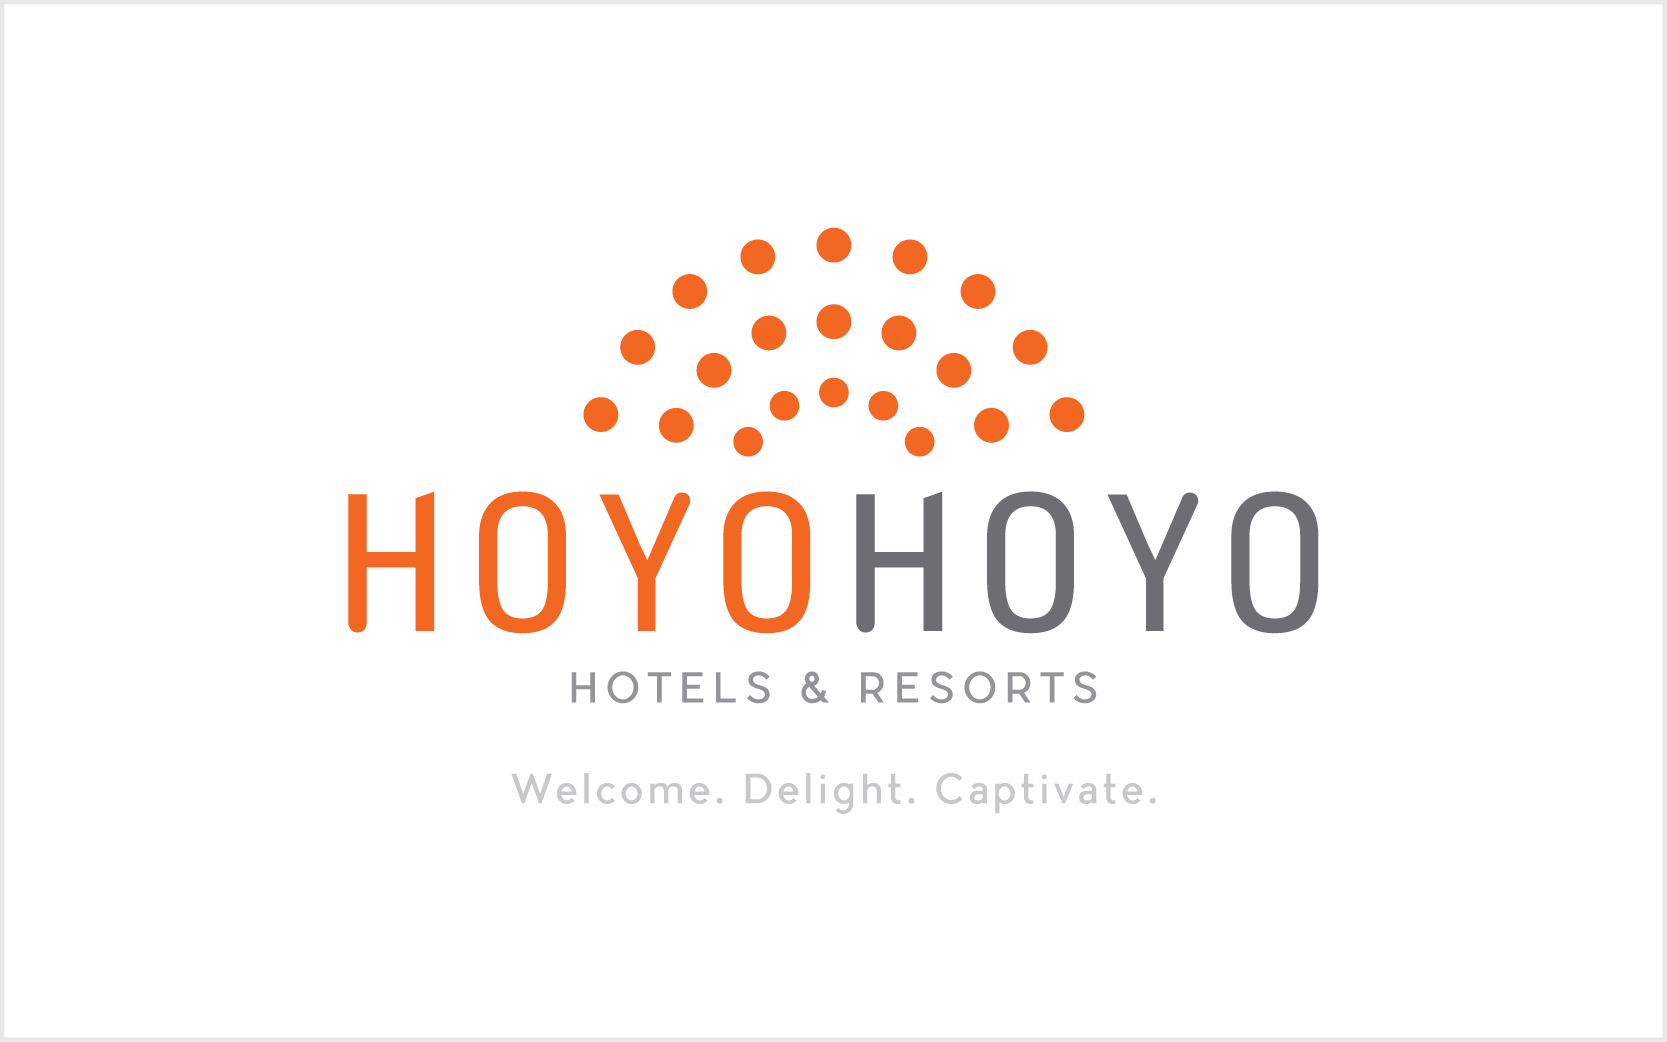 HoyoHoyo Leisure Logo